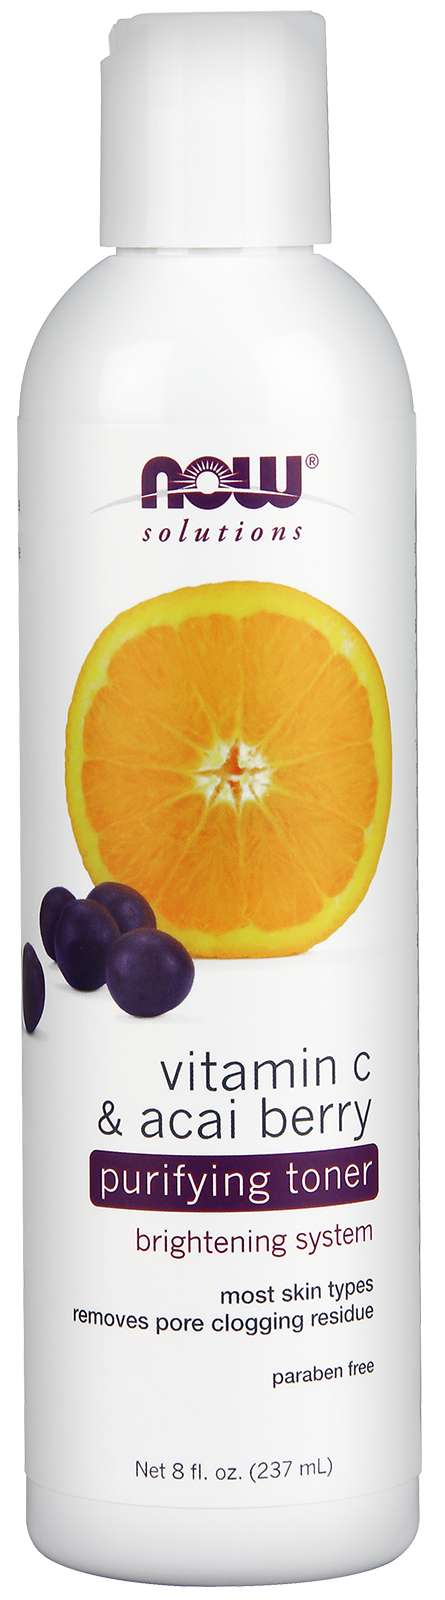 Vit C & Acai Purifying Toner 237mL